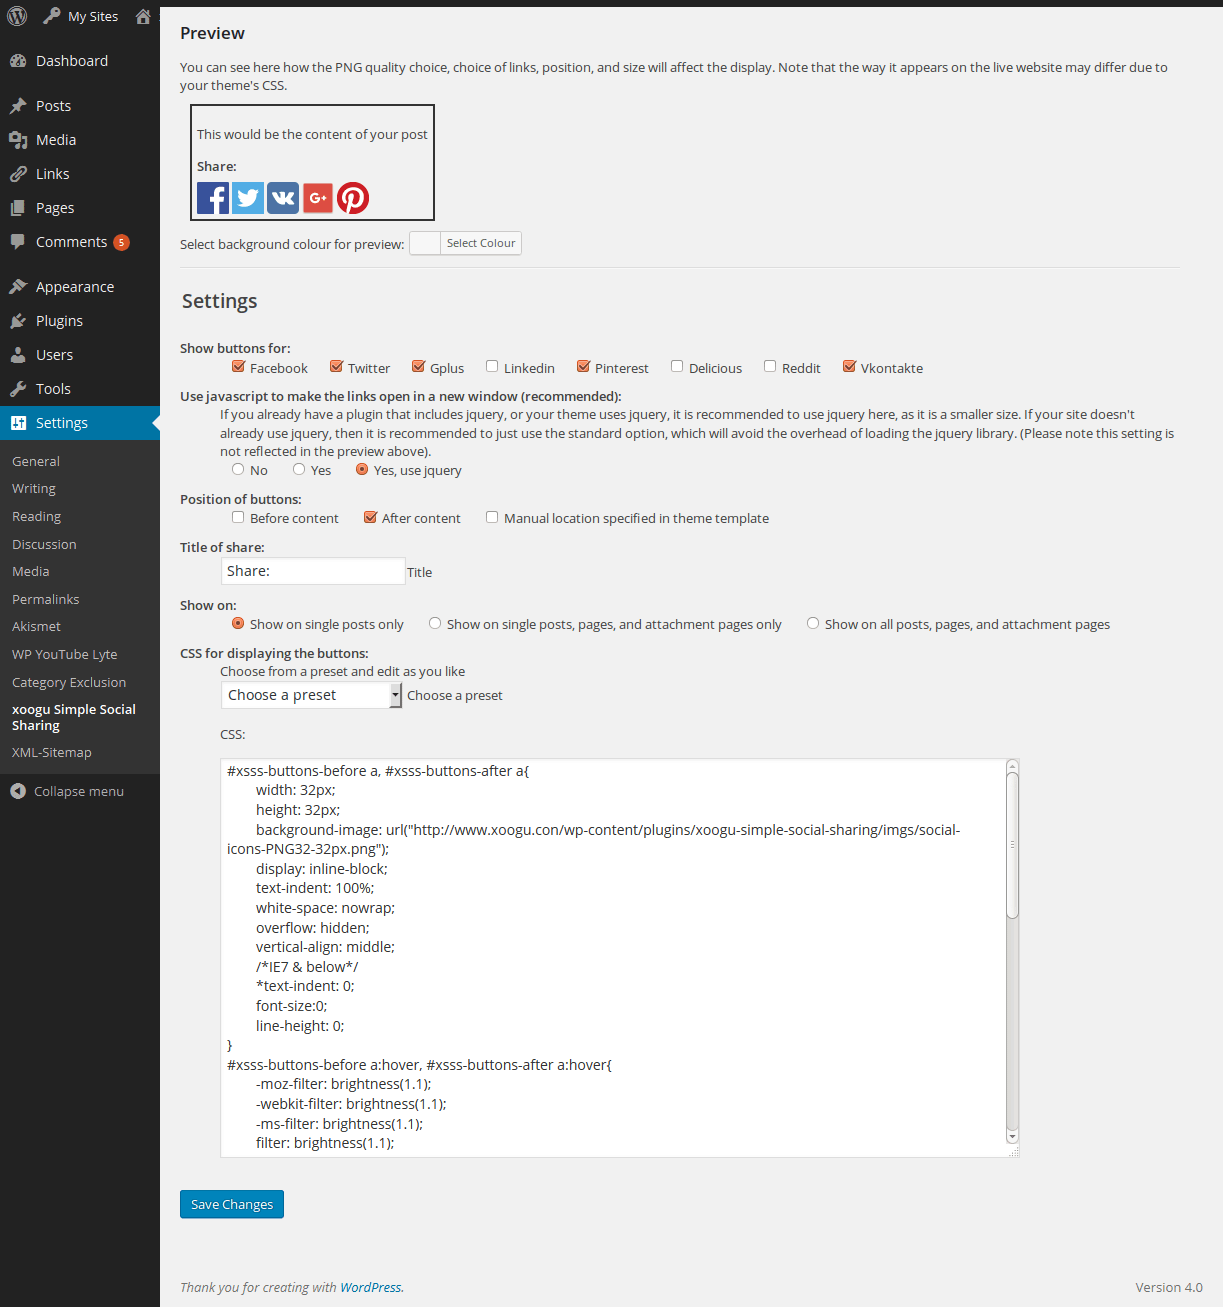 The plugin's Admin / Settings page